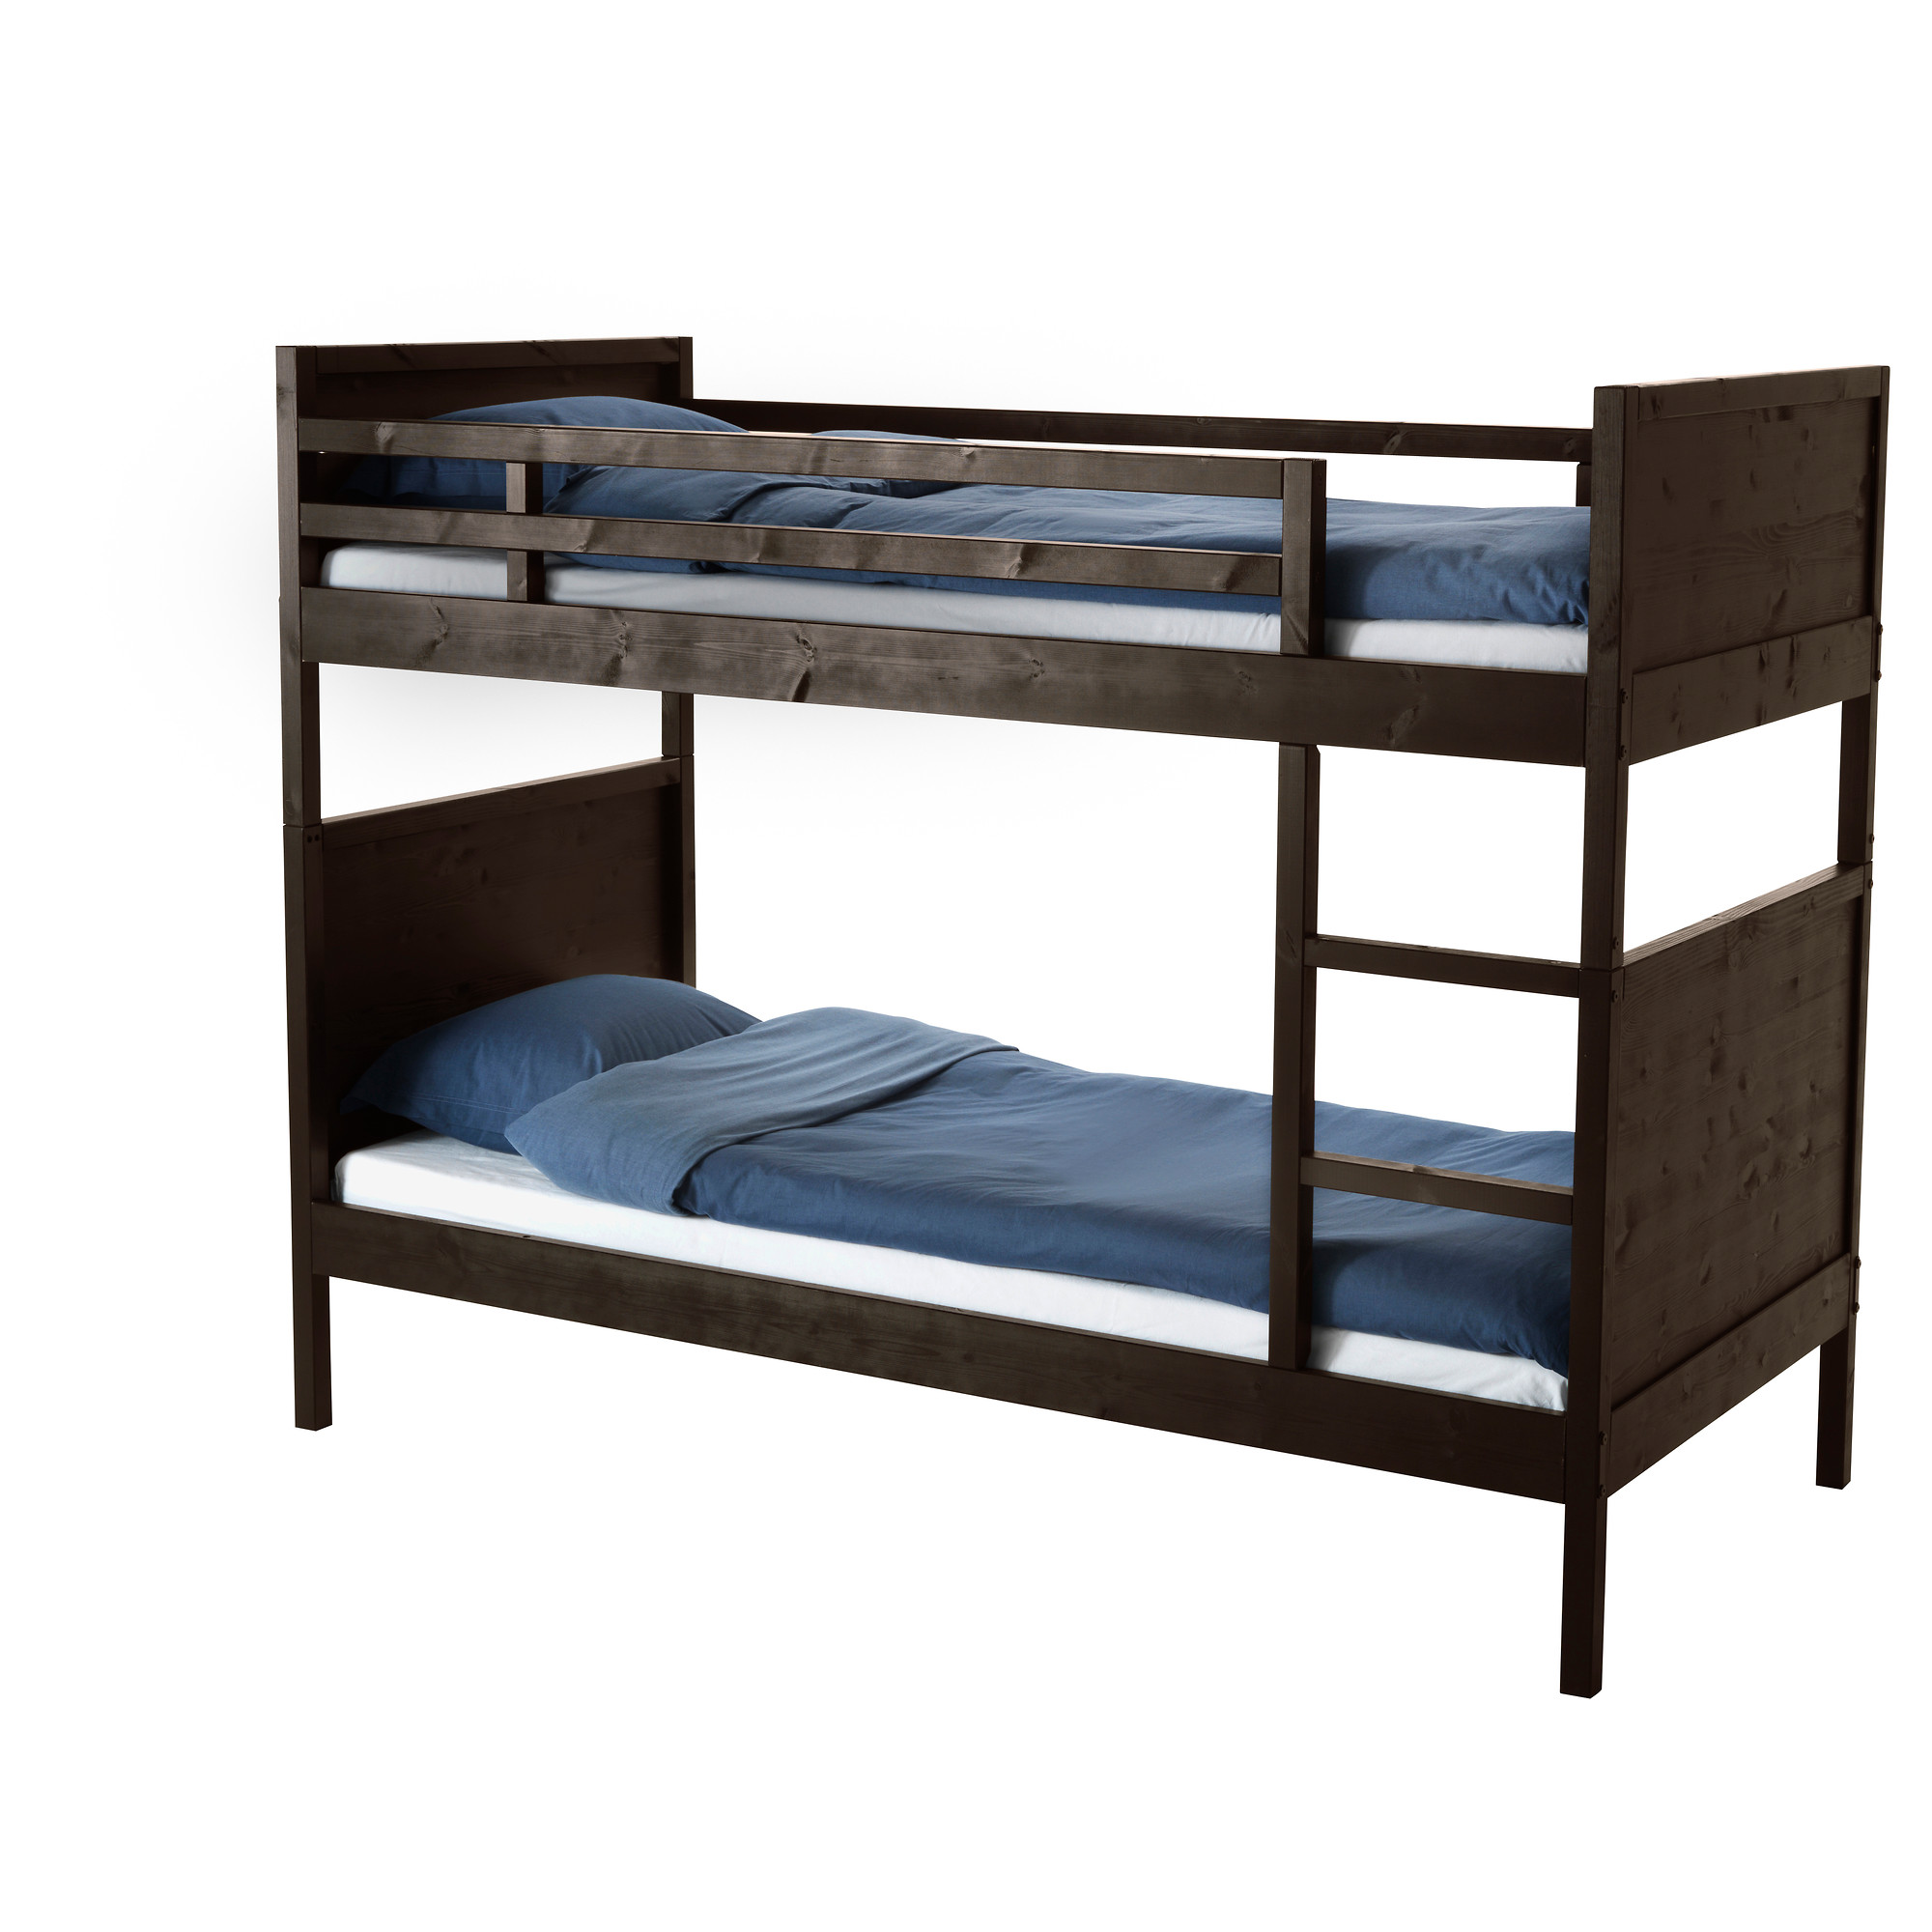 Picture of: Norddal Bunk Bed Frame Black Brown Ikea Hong Kong And Macau